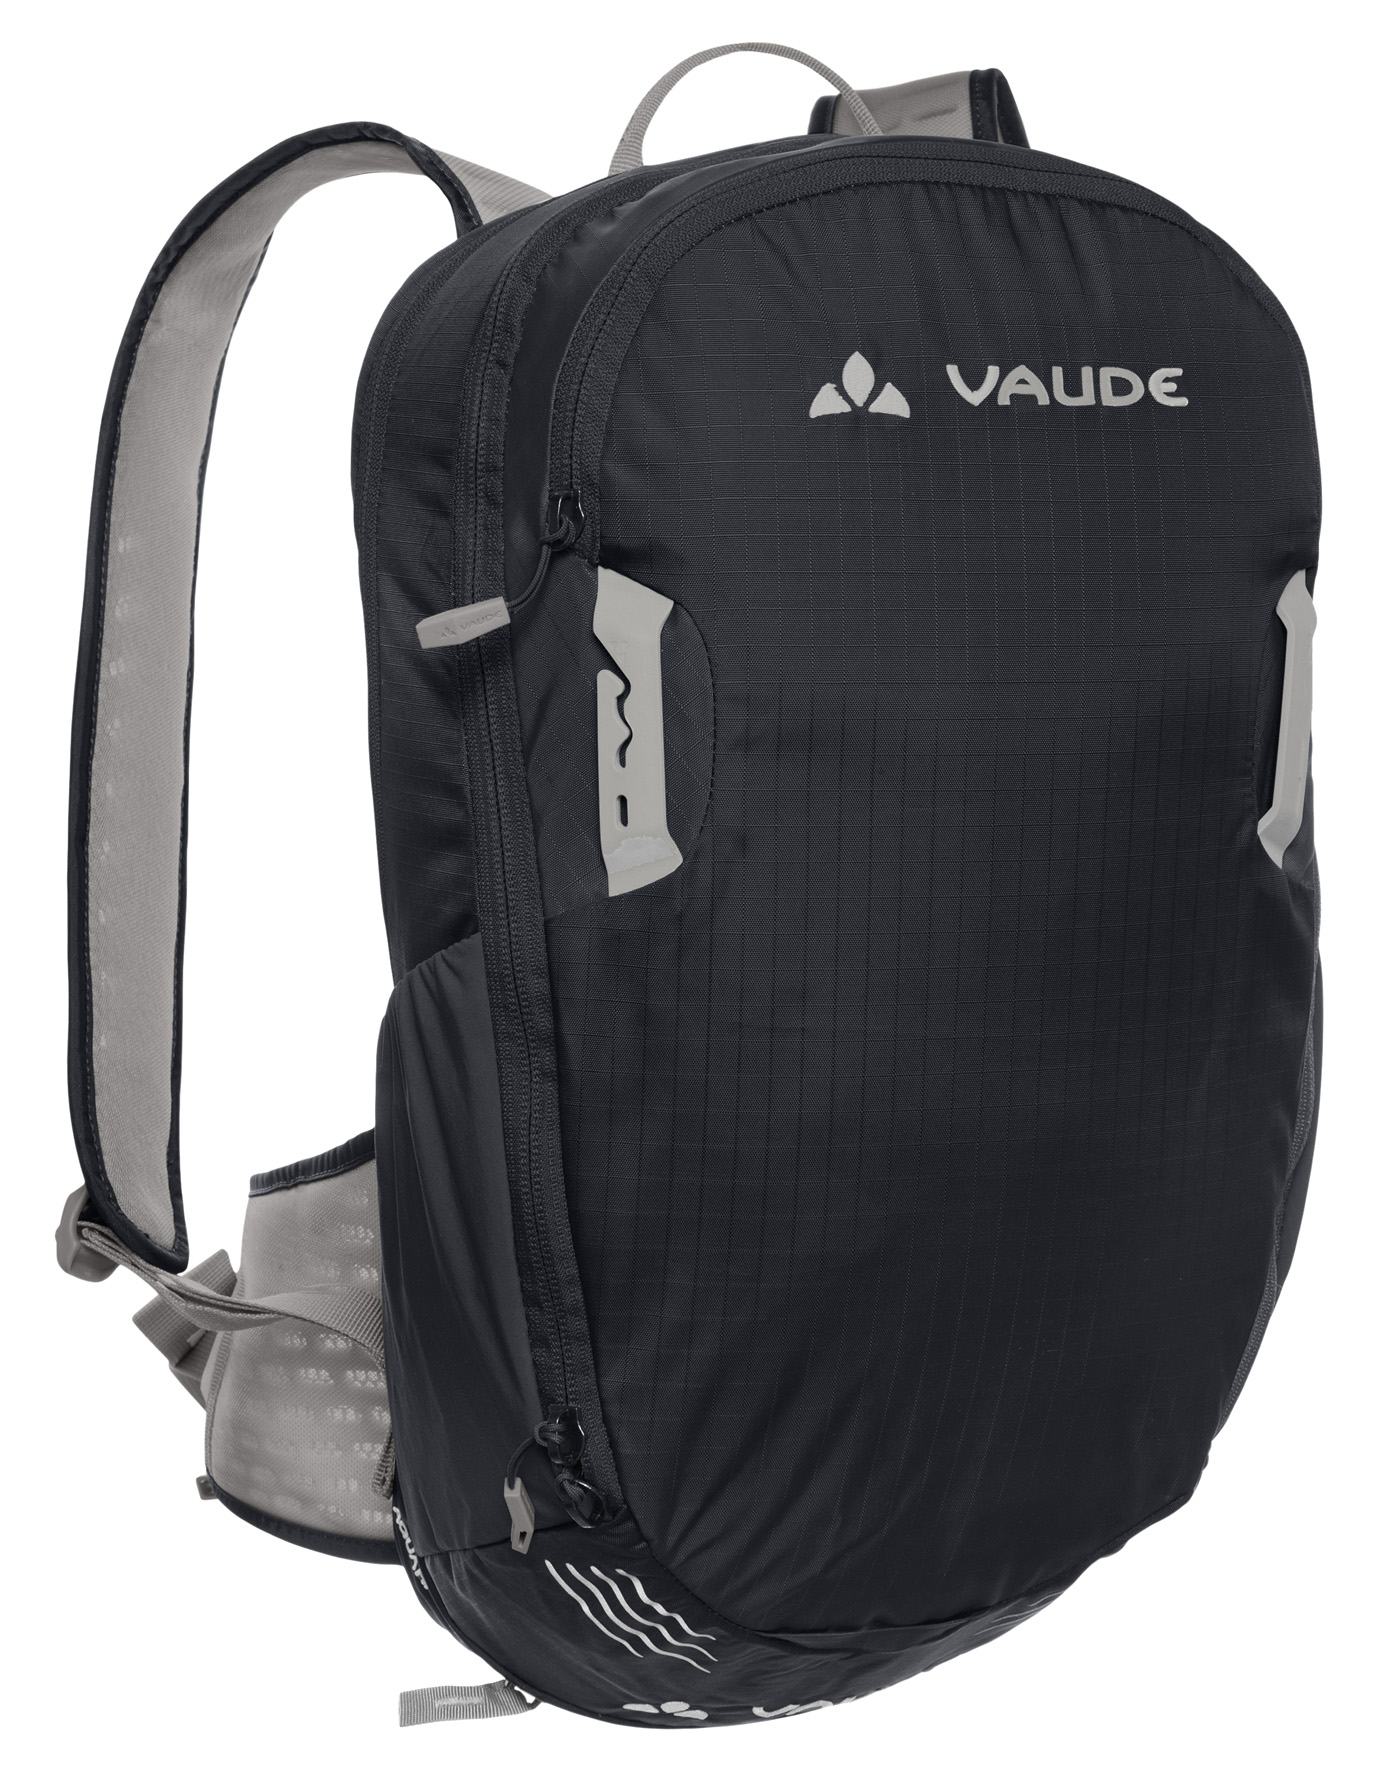 VAUDE Aquarius 9+3 black  - schneider-sports